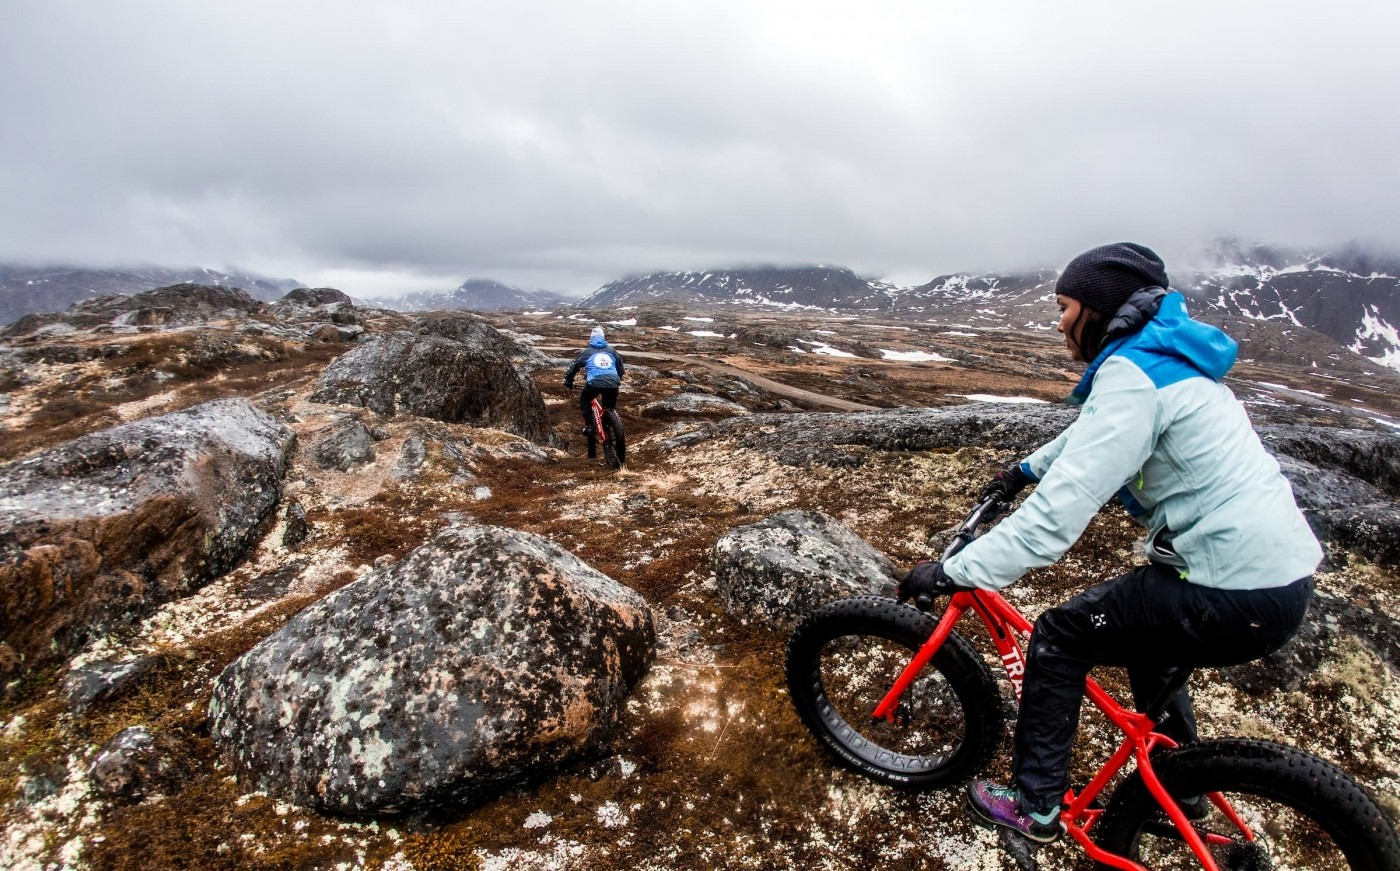 Arctic Fat biking in the Sisimiut backcountry near the Arctic Circle. Photo by Raven Eye Photography - Visit Greenland